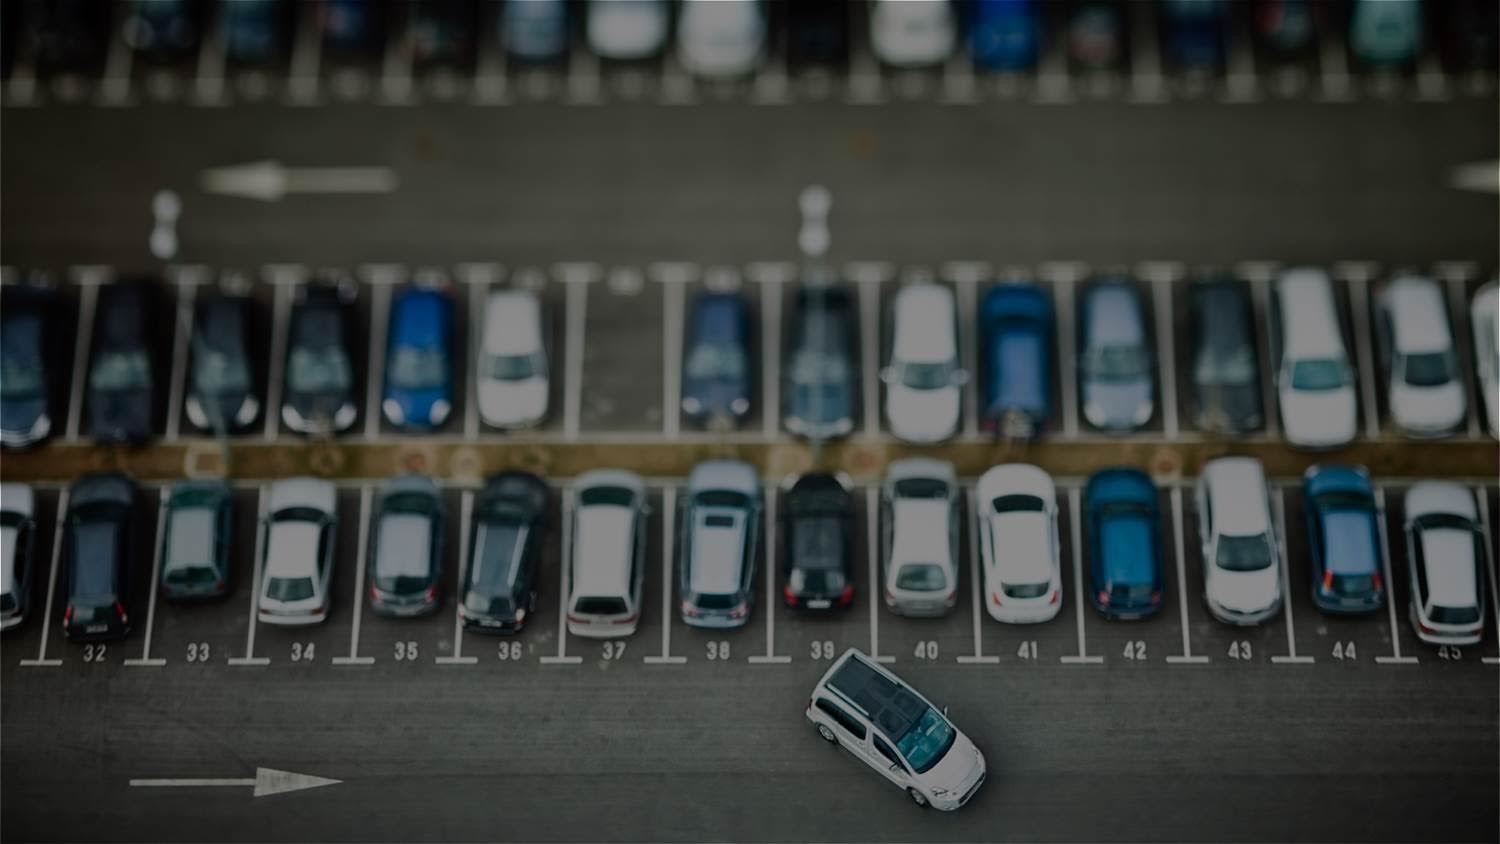 Putting the World's Billion Cars to Better Use